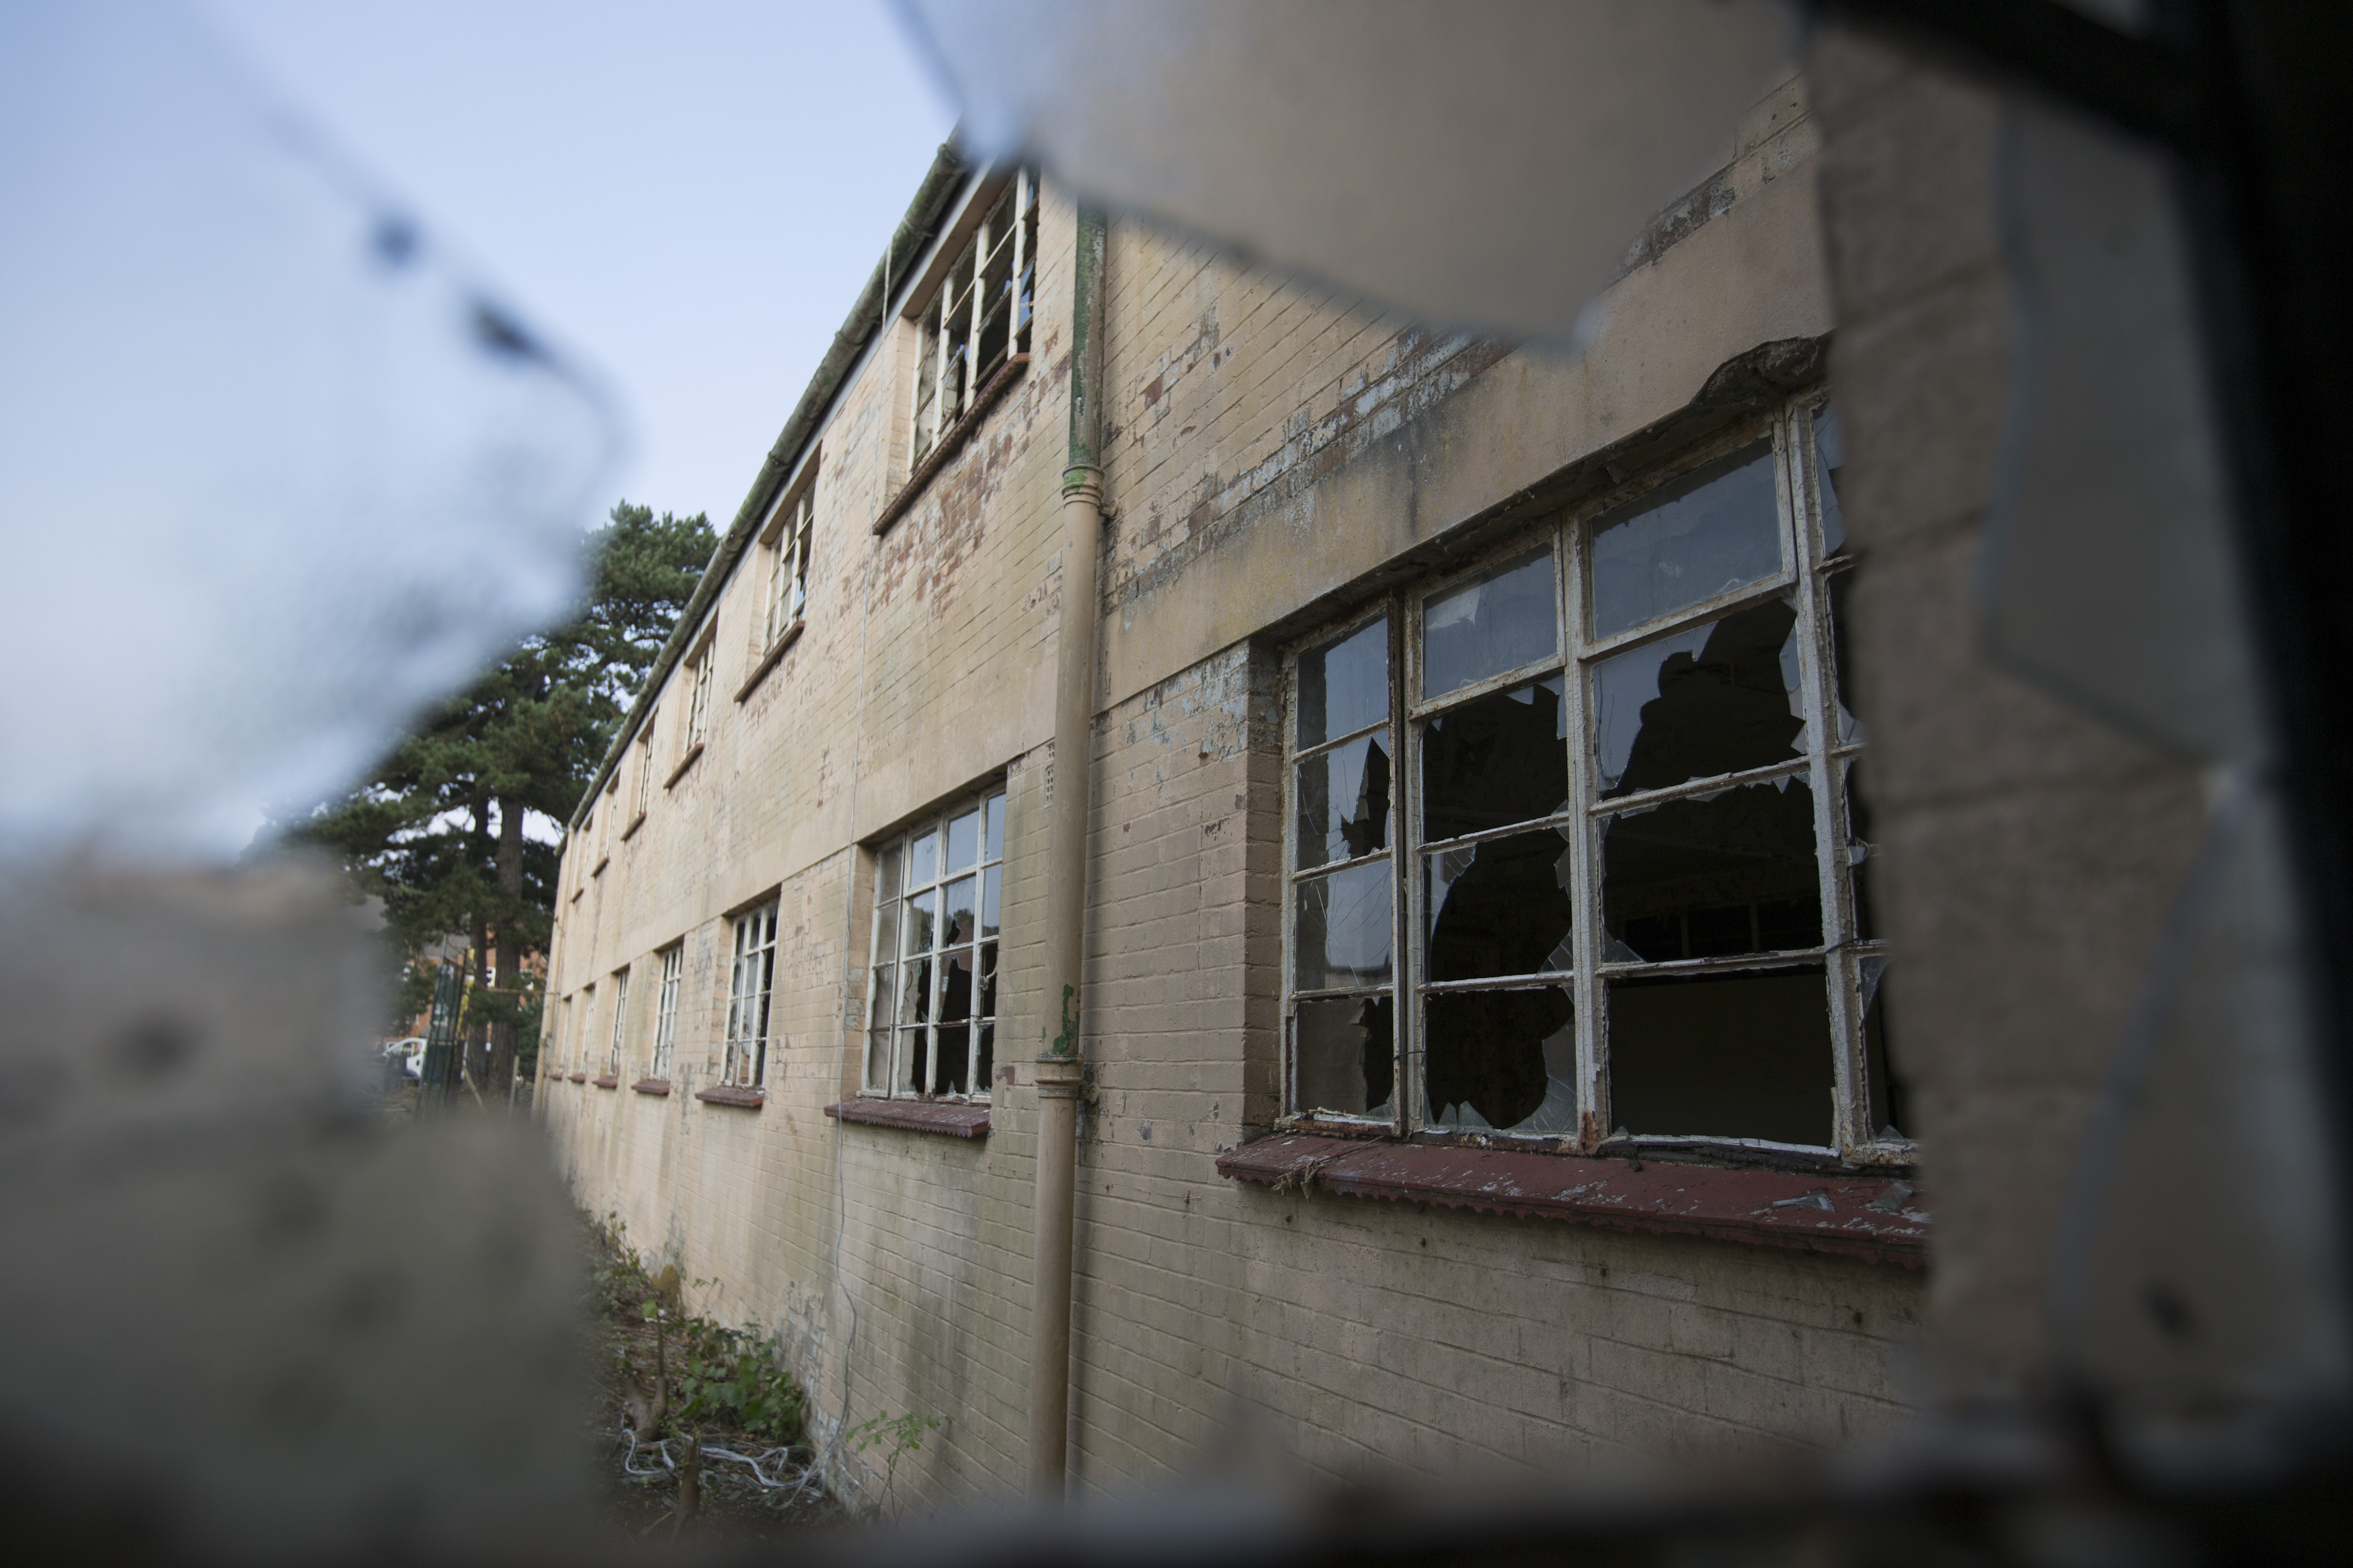 Much of the Bletchley site has fallen into a state of disrepair.